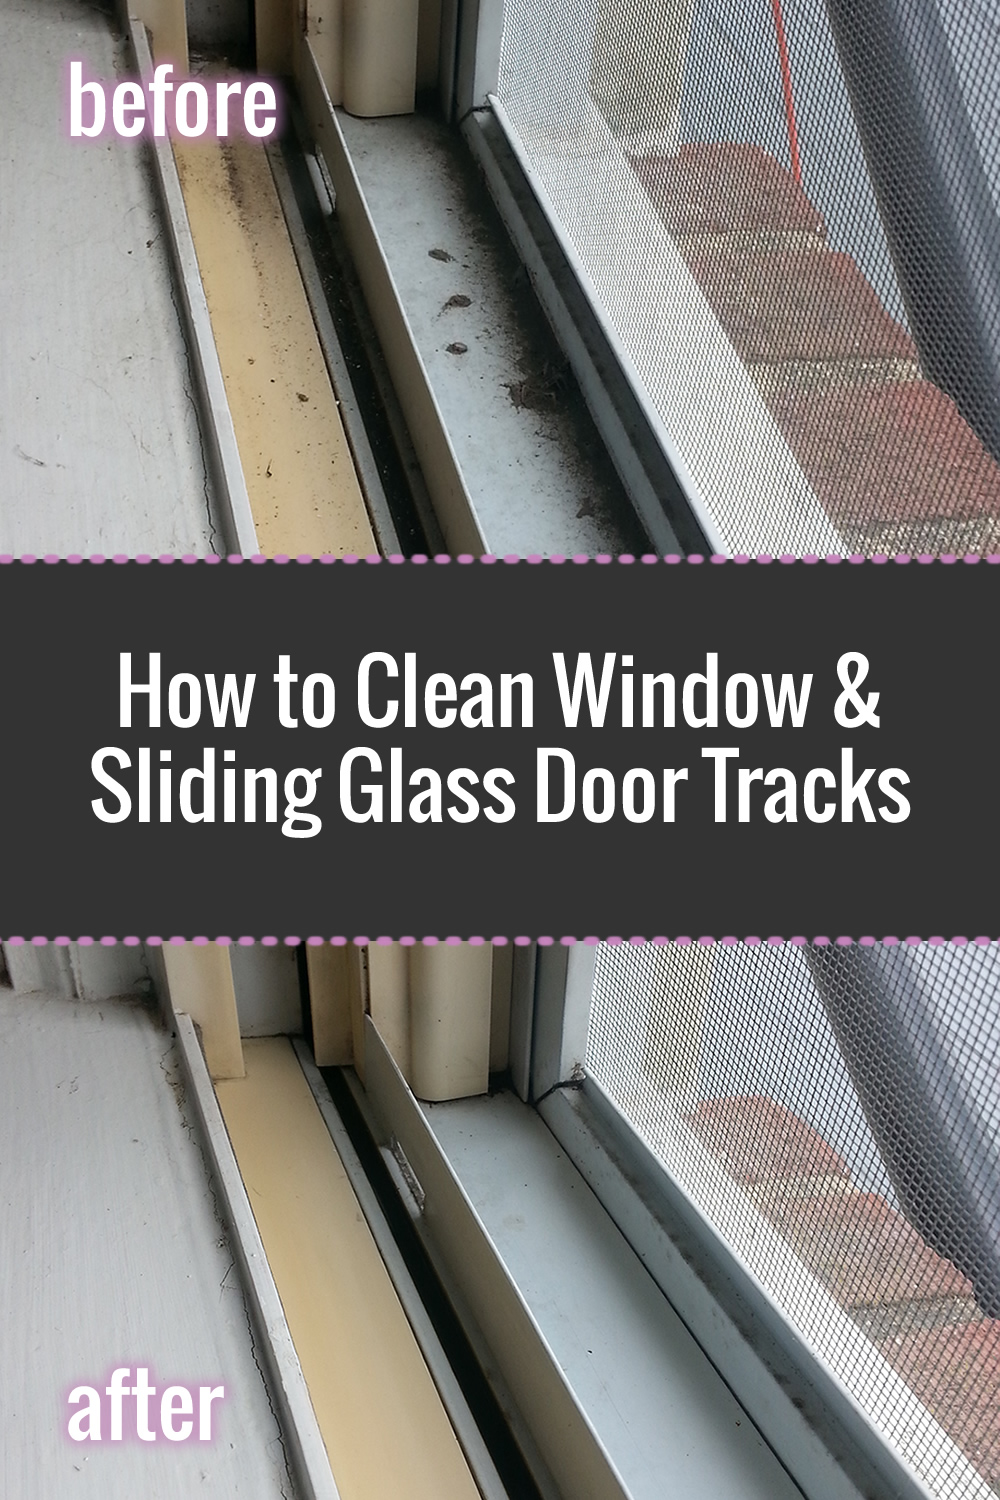 How to clean window tracks: Easy step-by-step process with photos